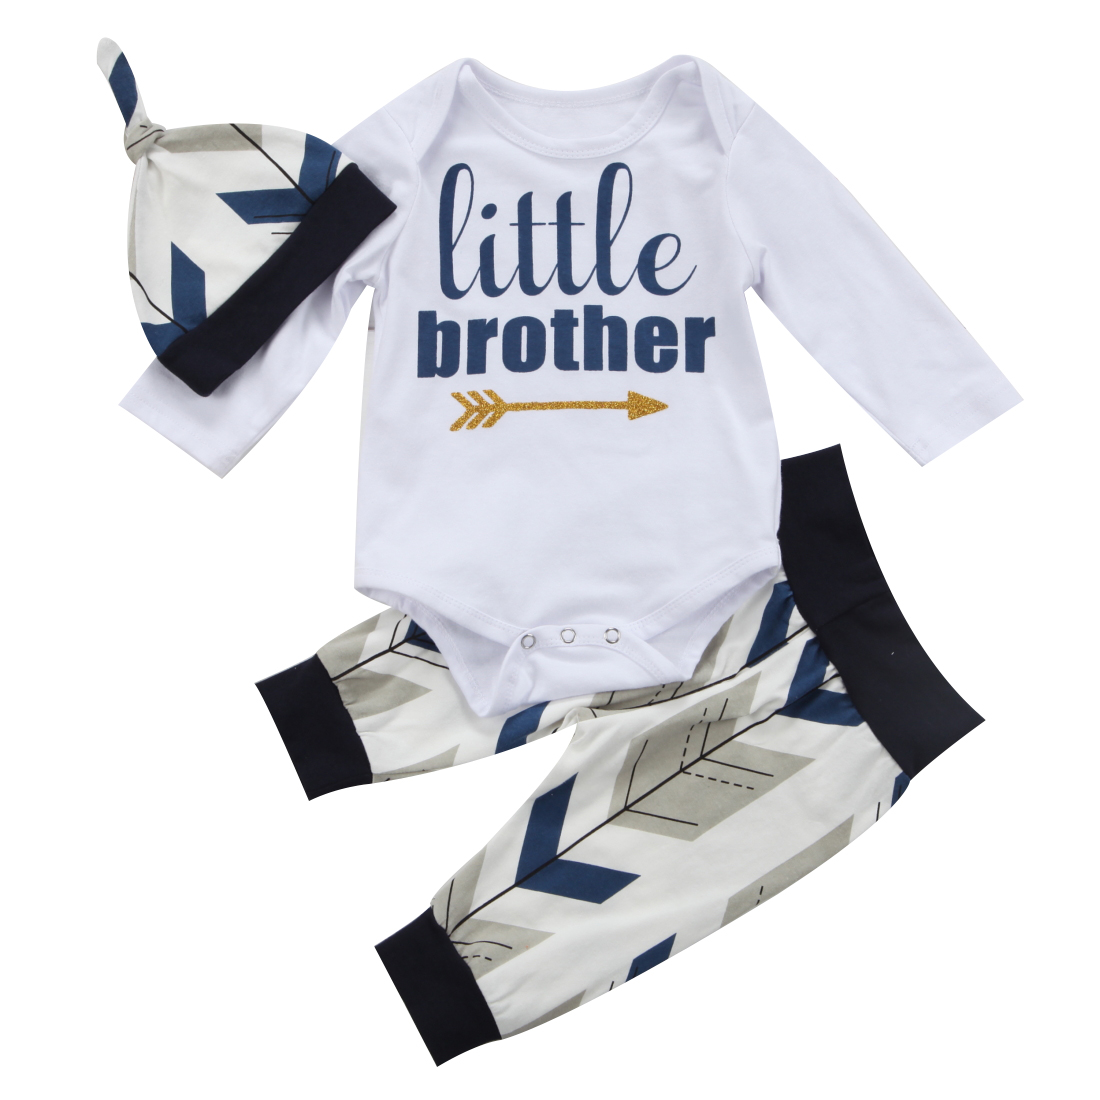 Adorable Newborn Baby Boys Clothes Sets Infant Little Brother Romper Tops + Long Pants Hats Outfits